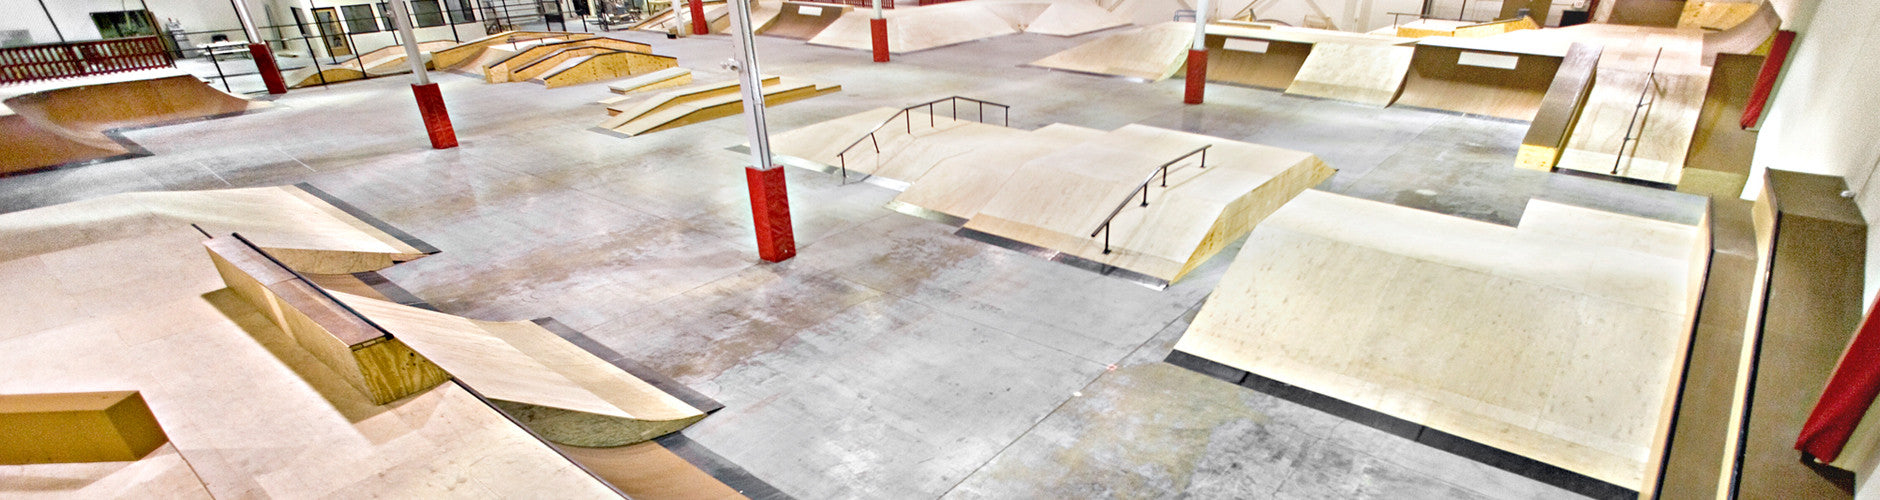 Over 1 acre of ramps and rails!